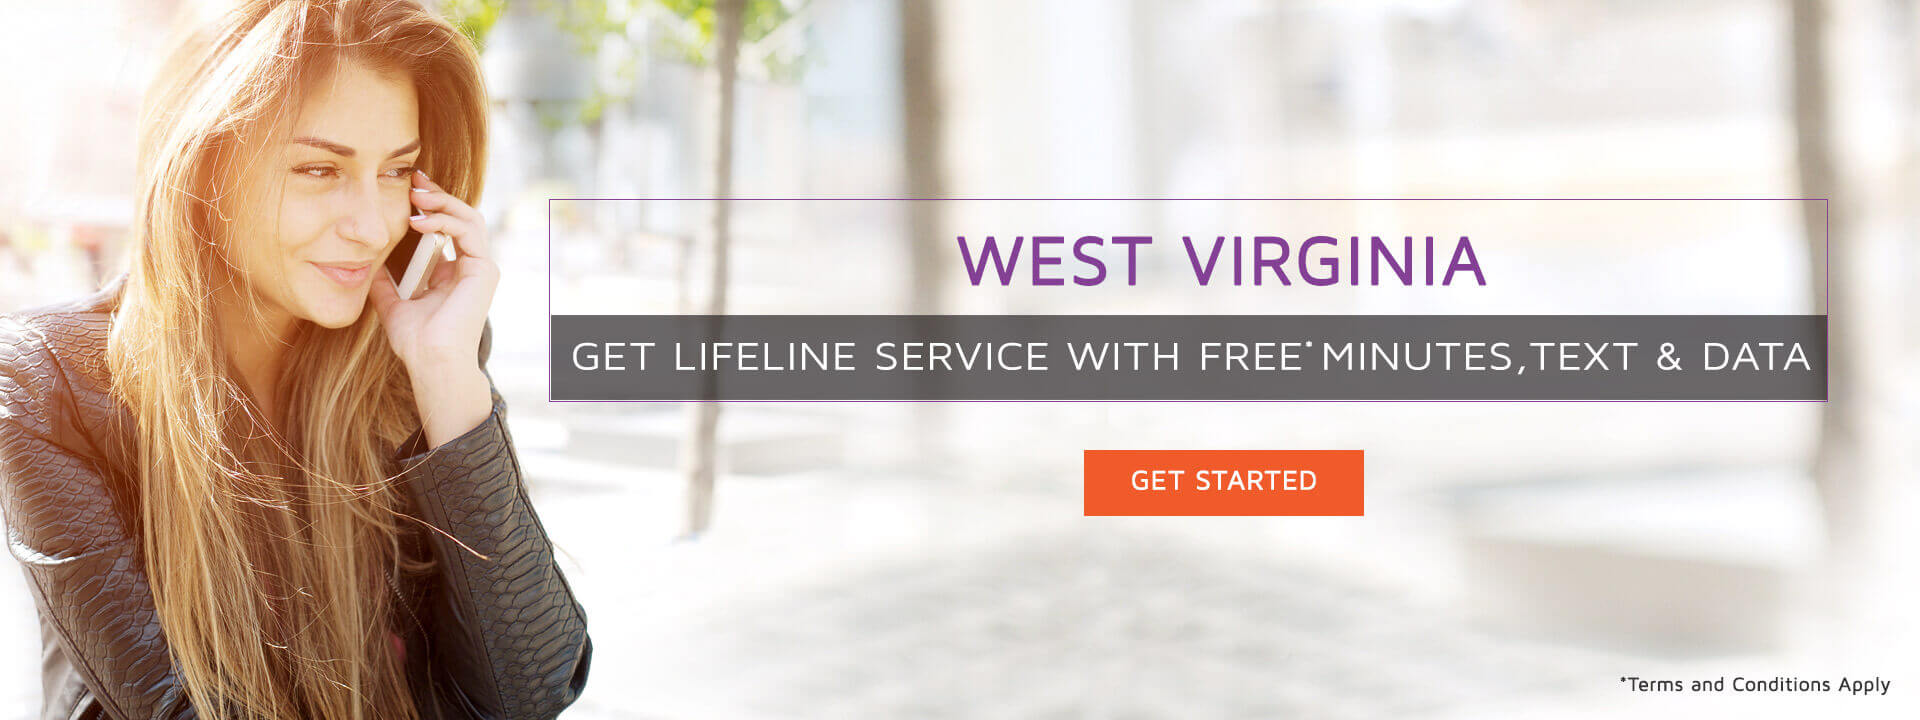 West Virginia Lifeline Service